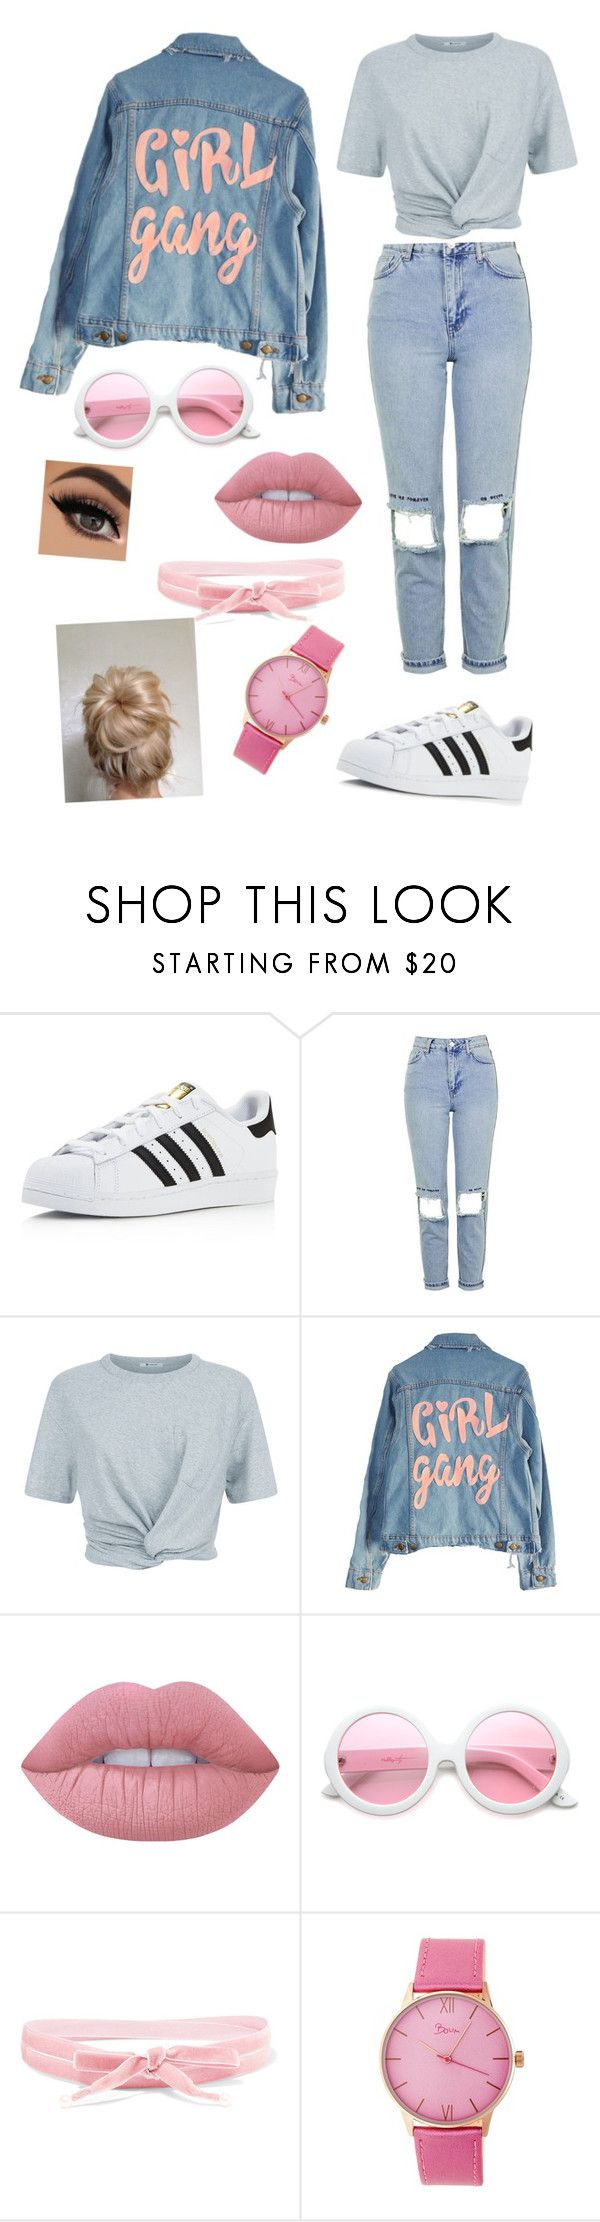 """""""Untitled #665"""" by panicx ❤ liked on Polyvore featuring adidas, Topshop, T By Alexander Wang, High Heels Suicide, Lime Crime, ZeroUV, Aamaya by Priyanka and Boum"""